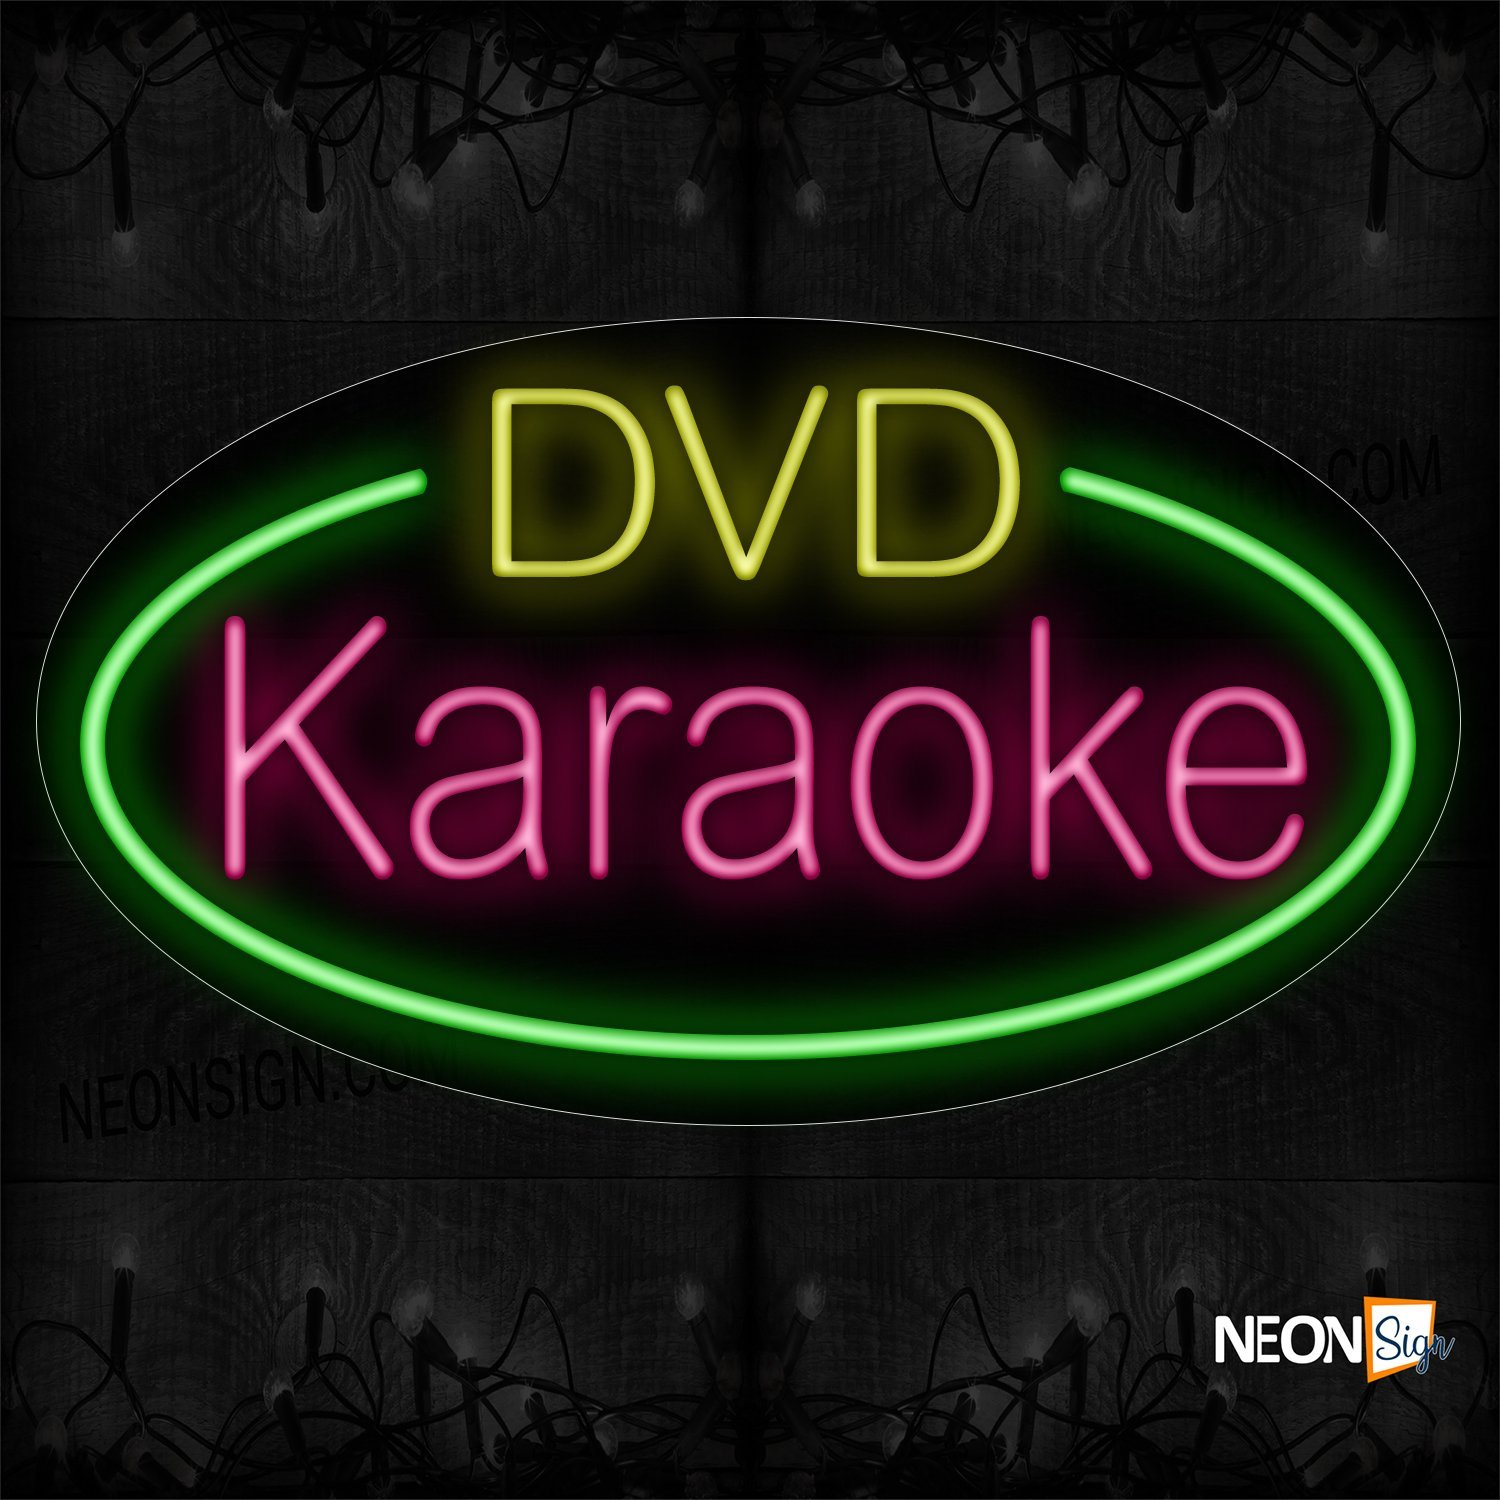 Image of 14516 Dvd Karaoke With Green Oval Border Neon Sign_17x30 Countoured Black Backing